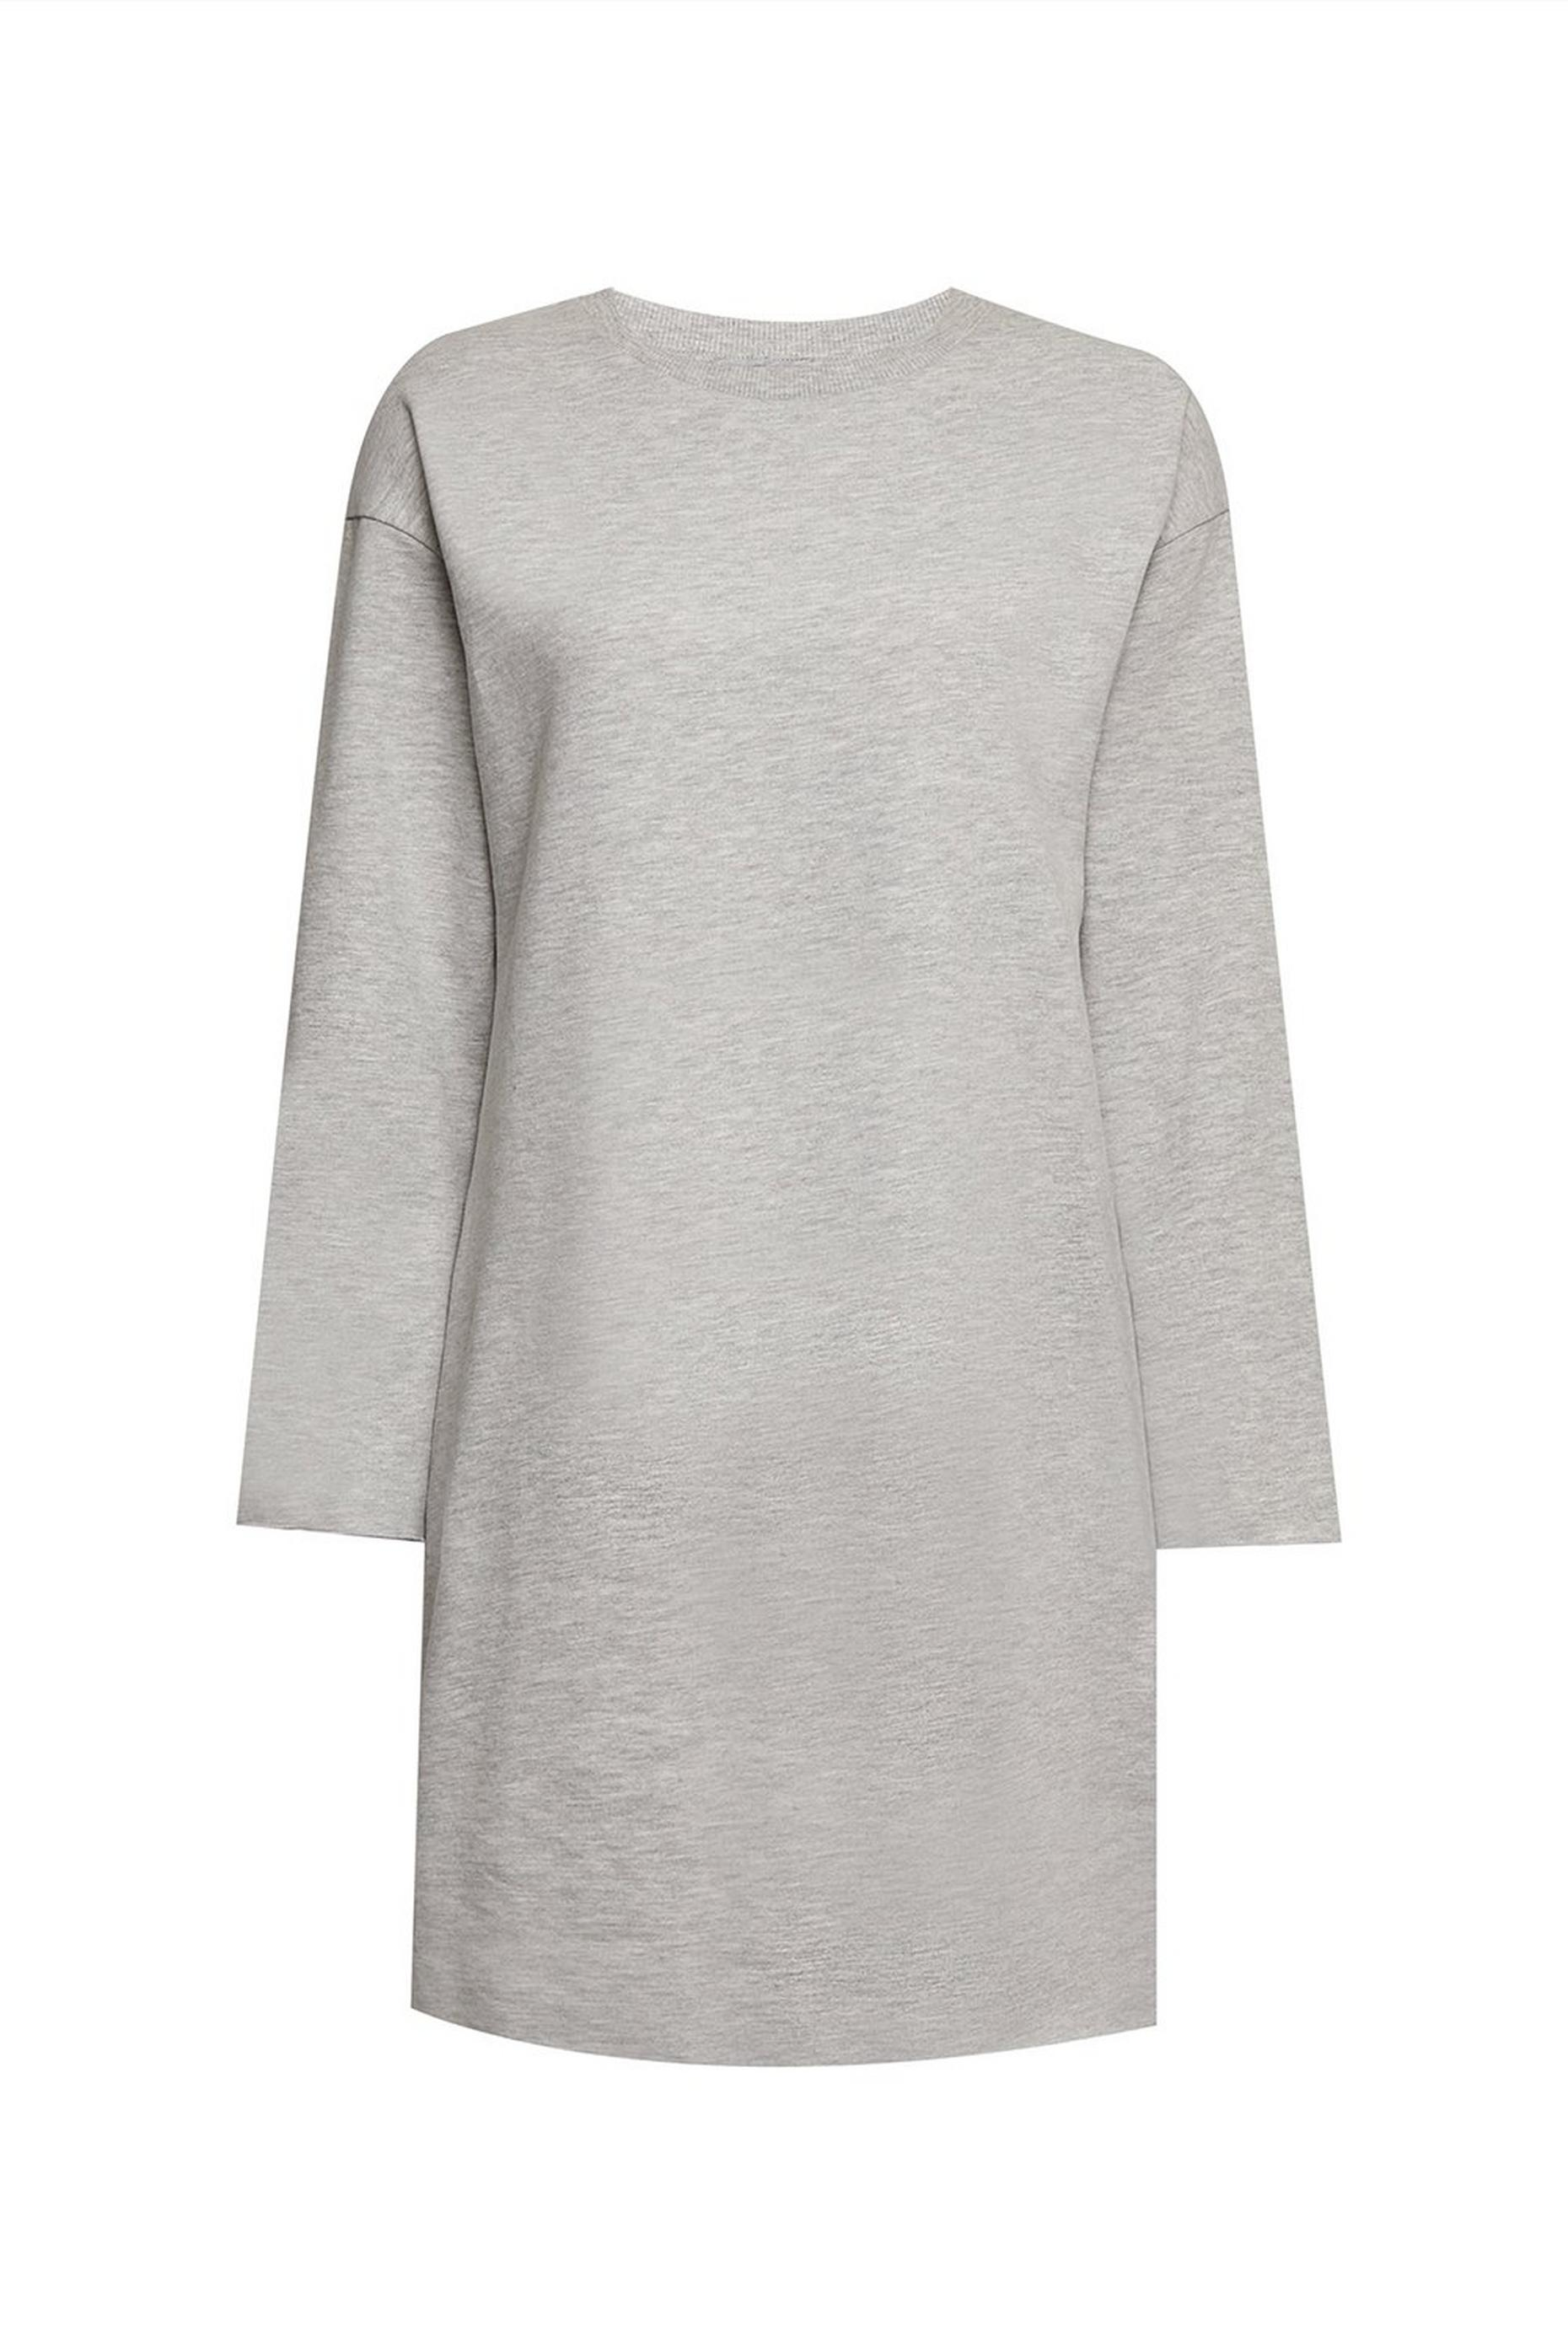 Tall Grey Sweatshirt Dress